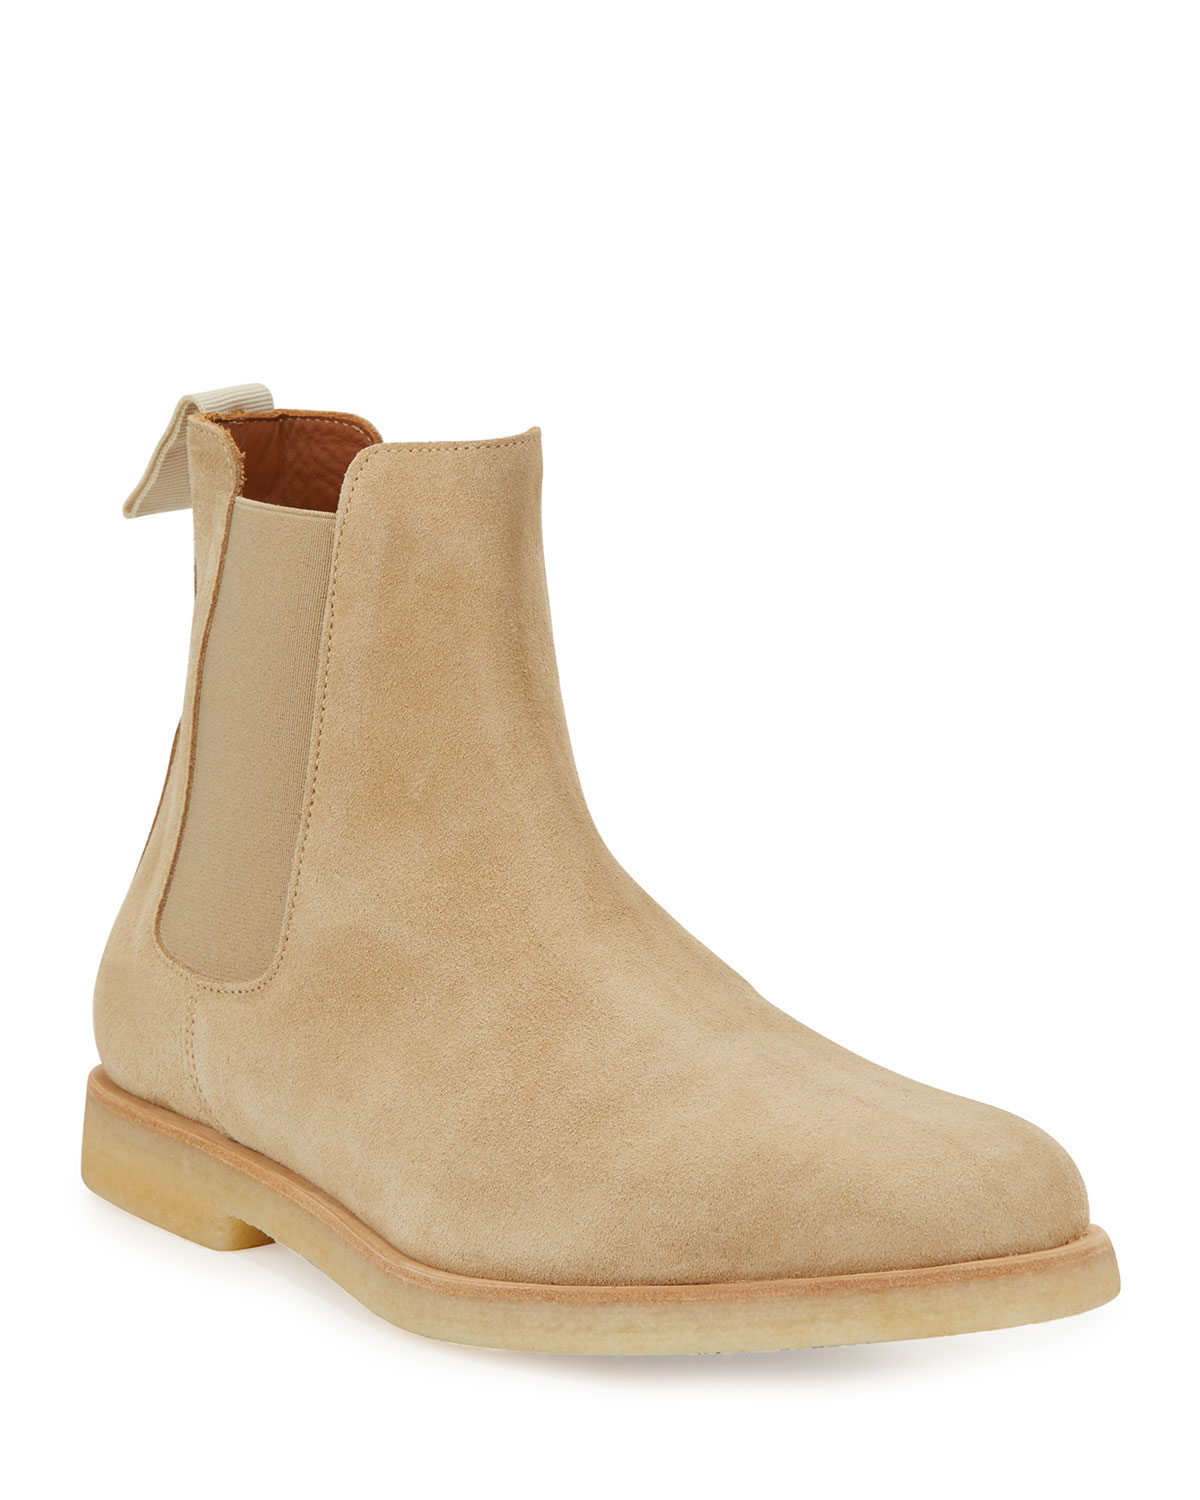 Common Projects Men S Calf Suede Chelsea Boot Tan Neiman Marcus